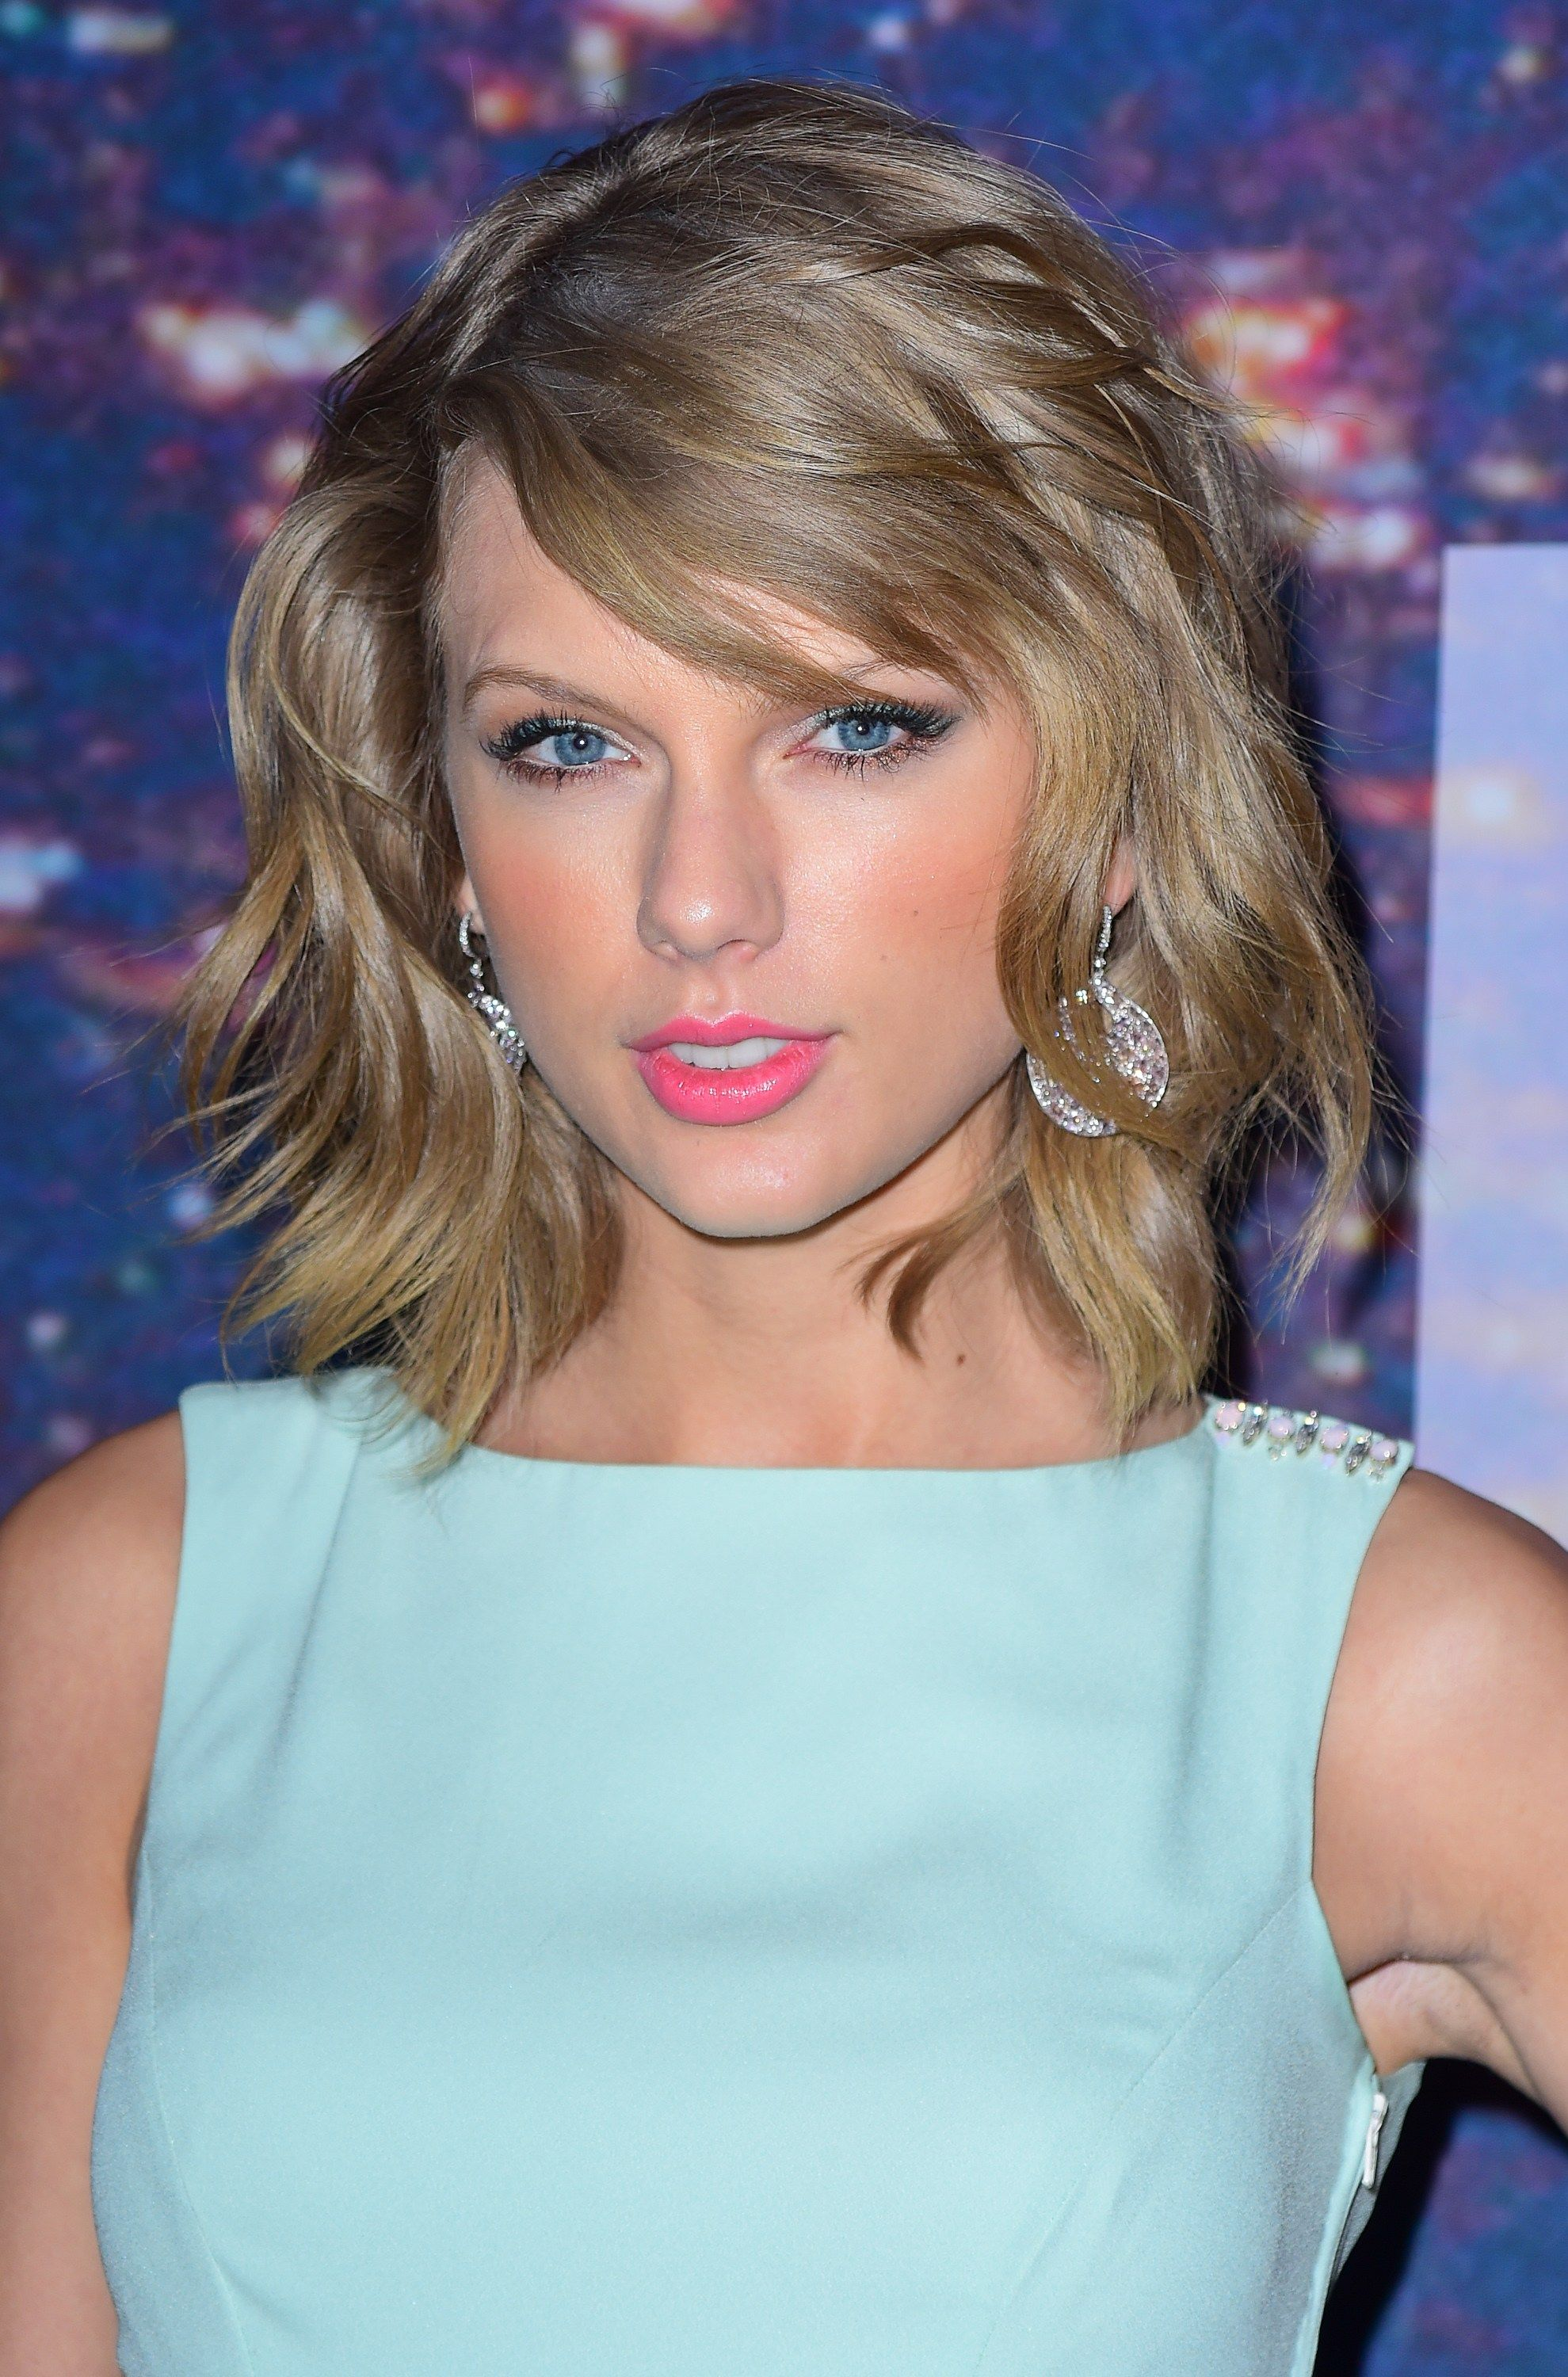 Taylor Swift Wears Summery Sweet Pastels For A Girls Night Out